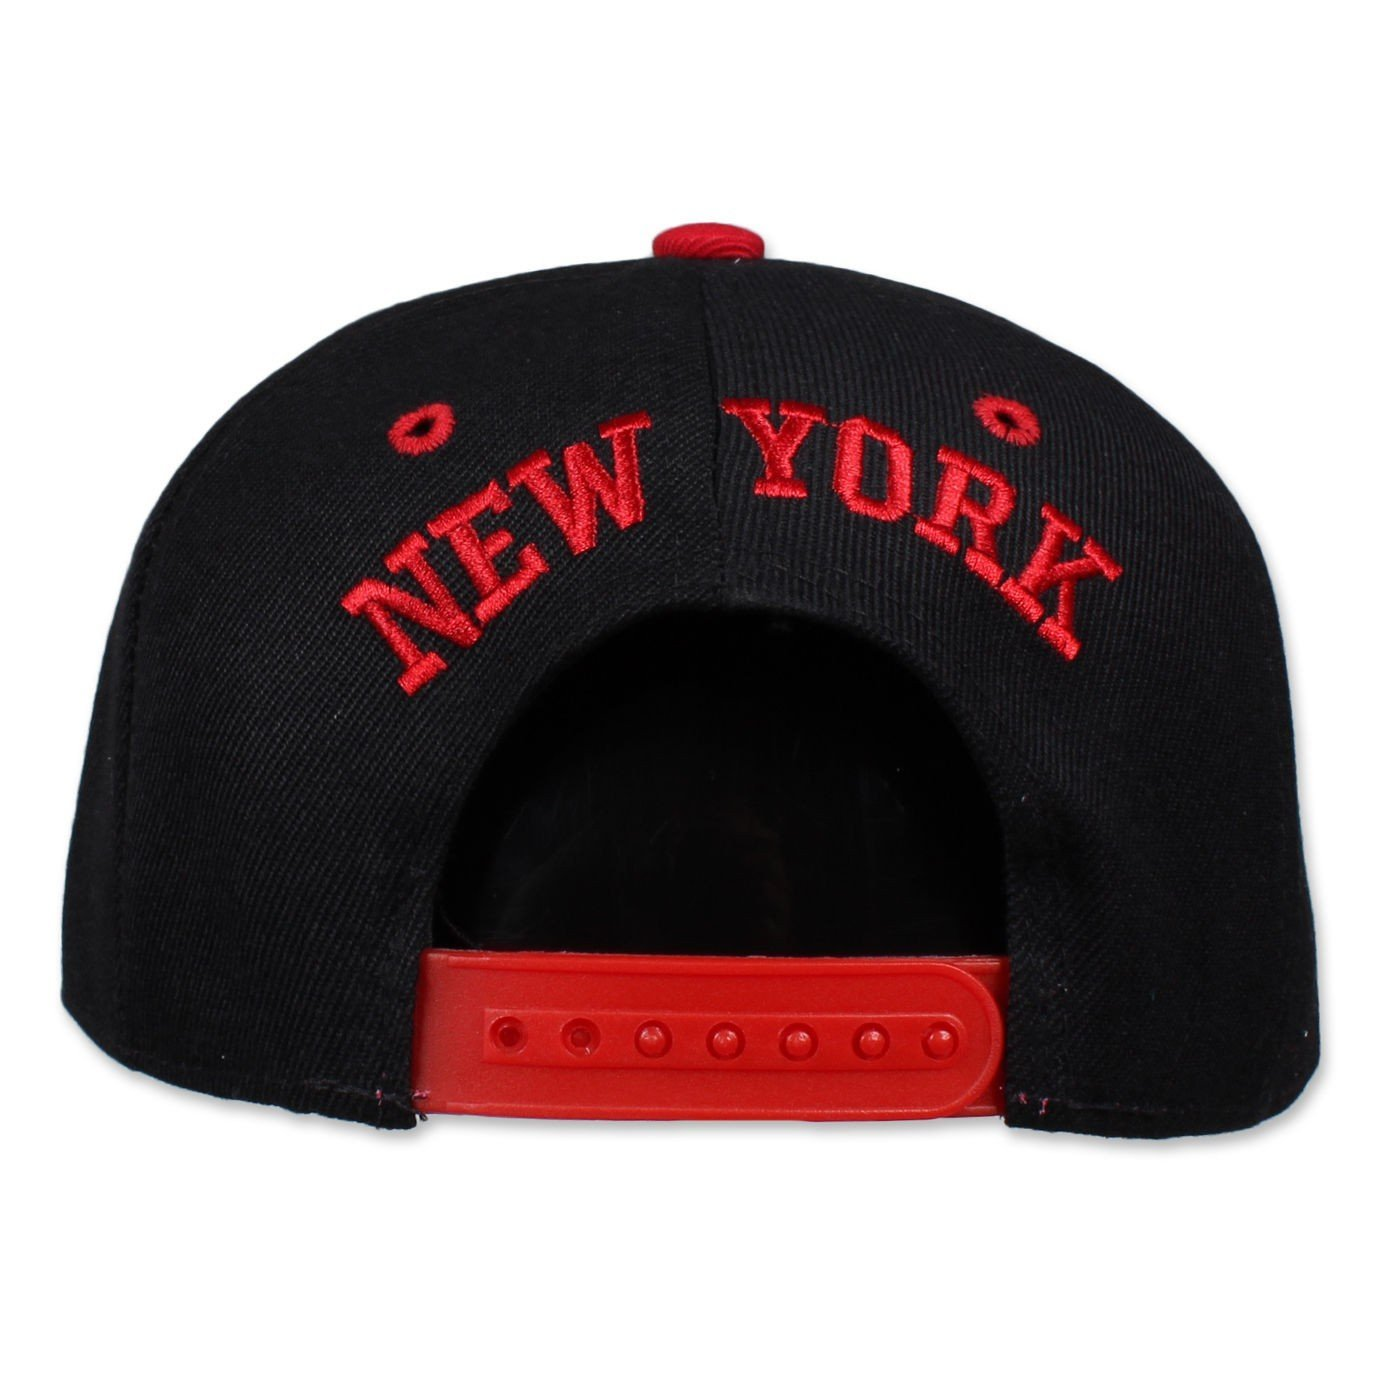 Original Snapback City Gorras